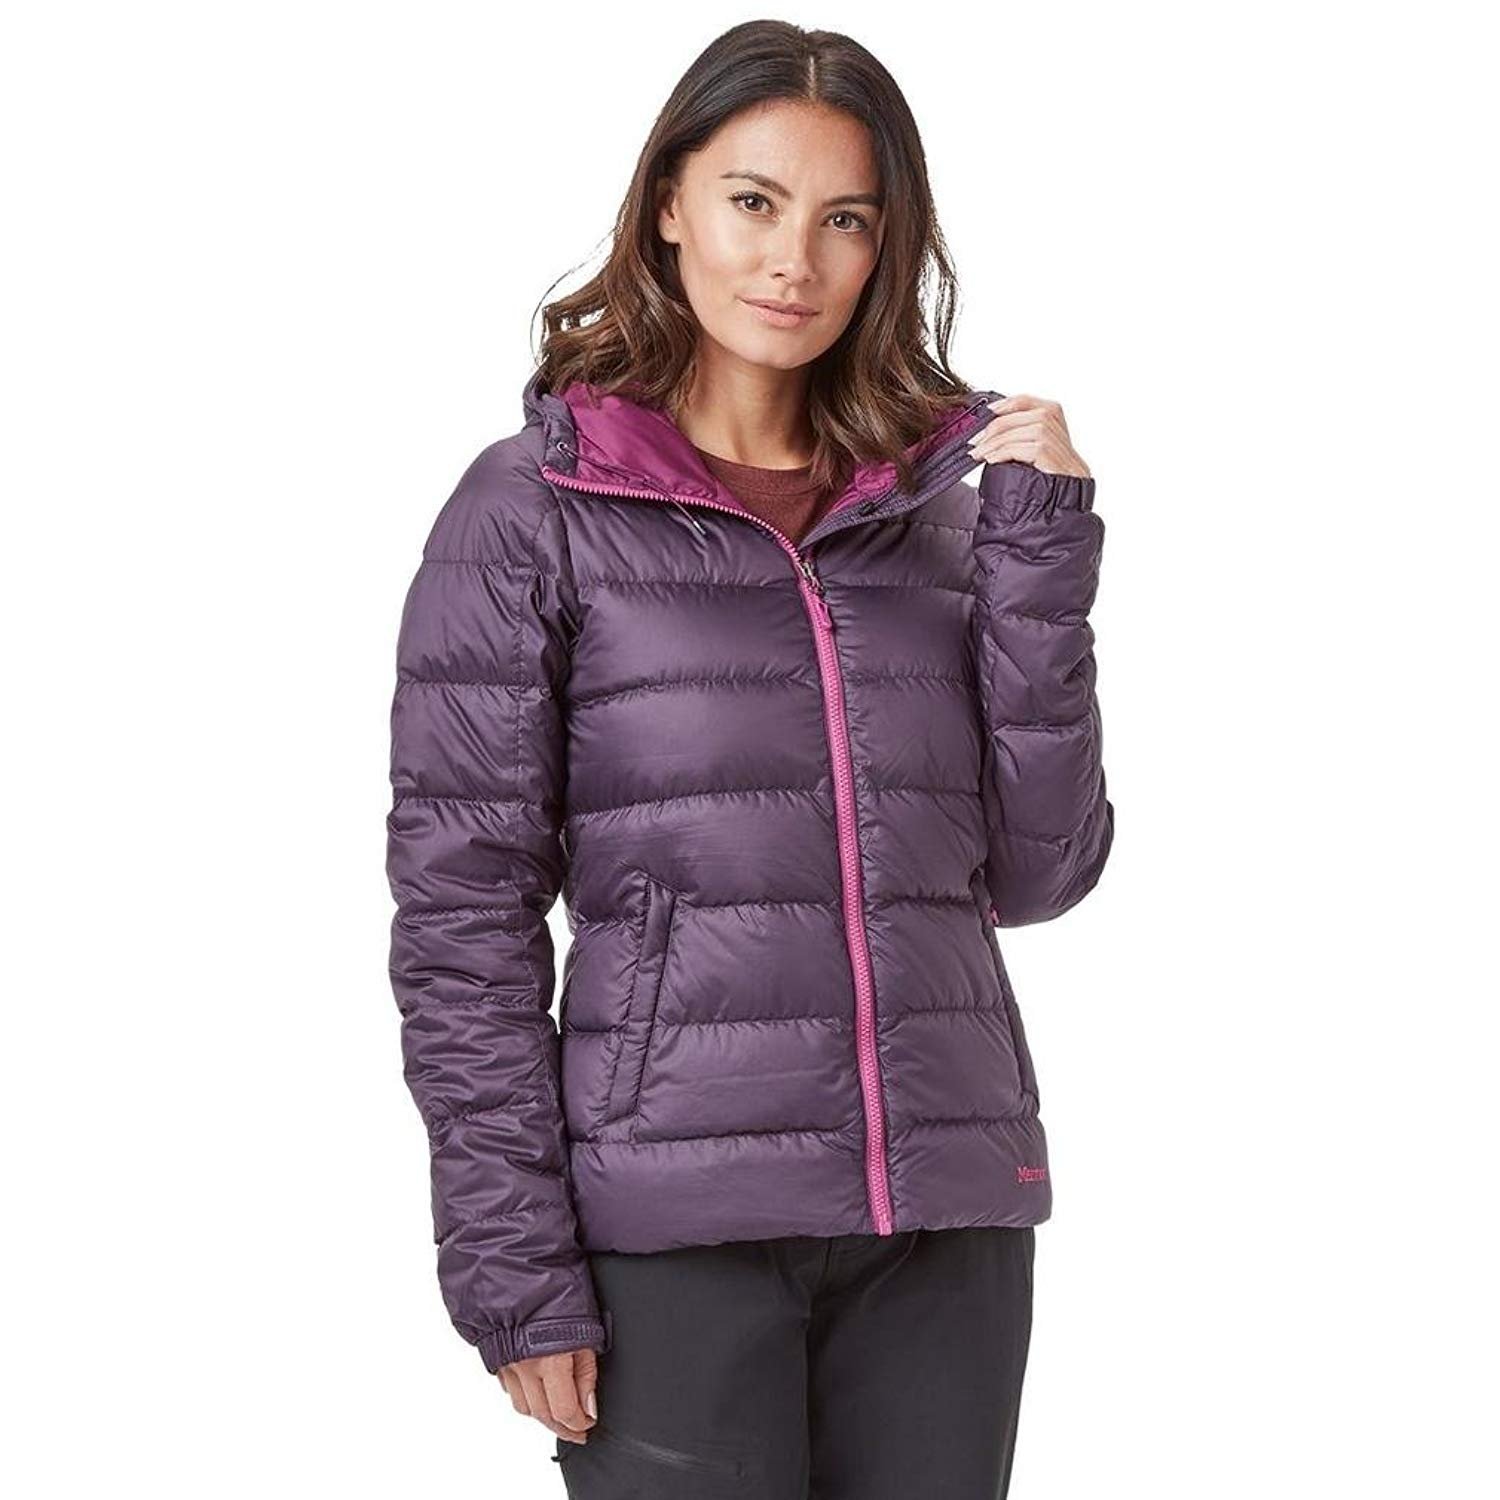 ac19dbfd797 Get Quotations · Marmot Women's Guides 700 Fill Power Down Hoodie Jacket  Coat (Nightshade Purple, Large)